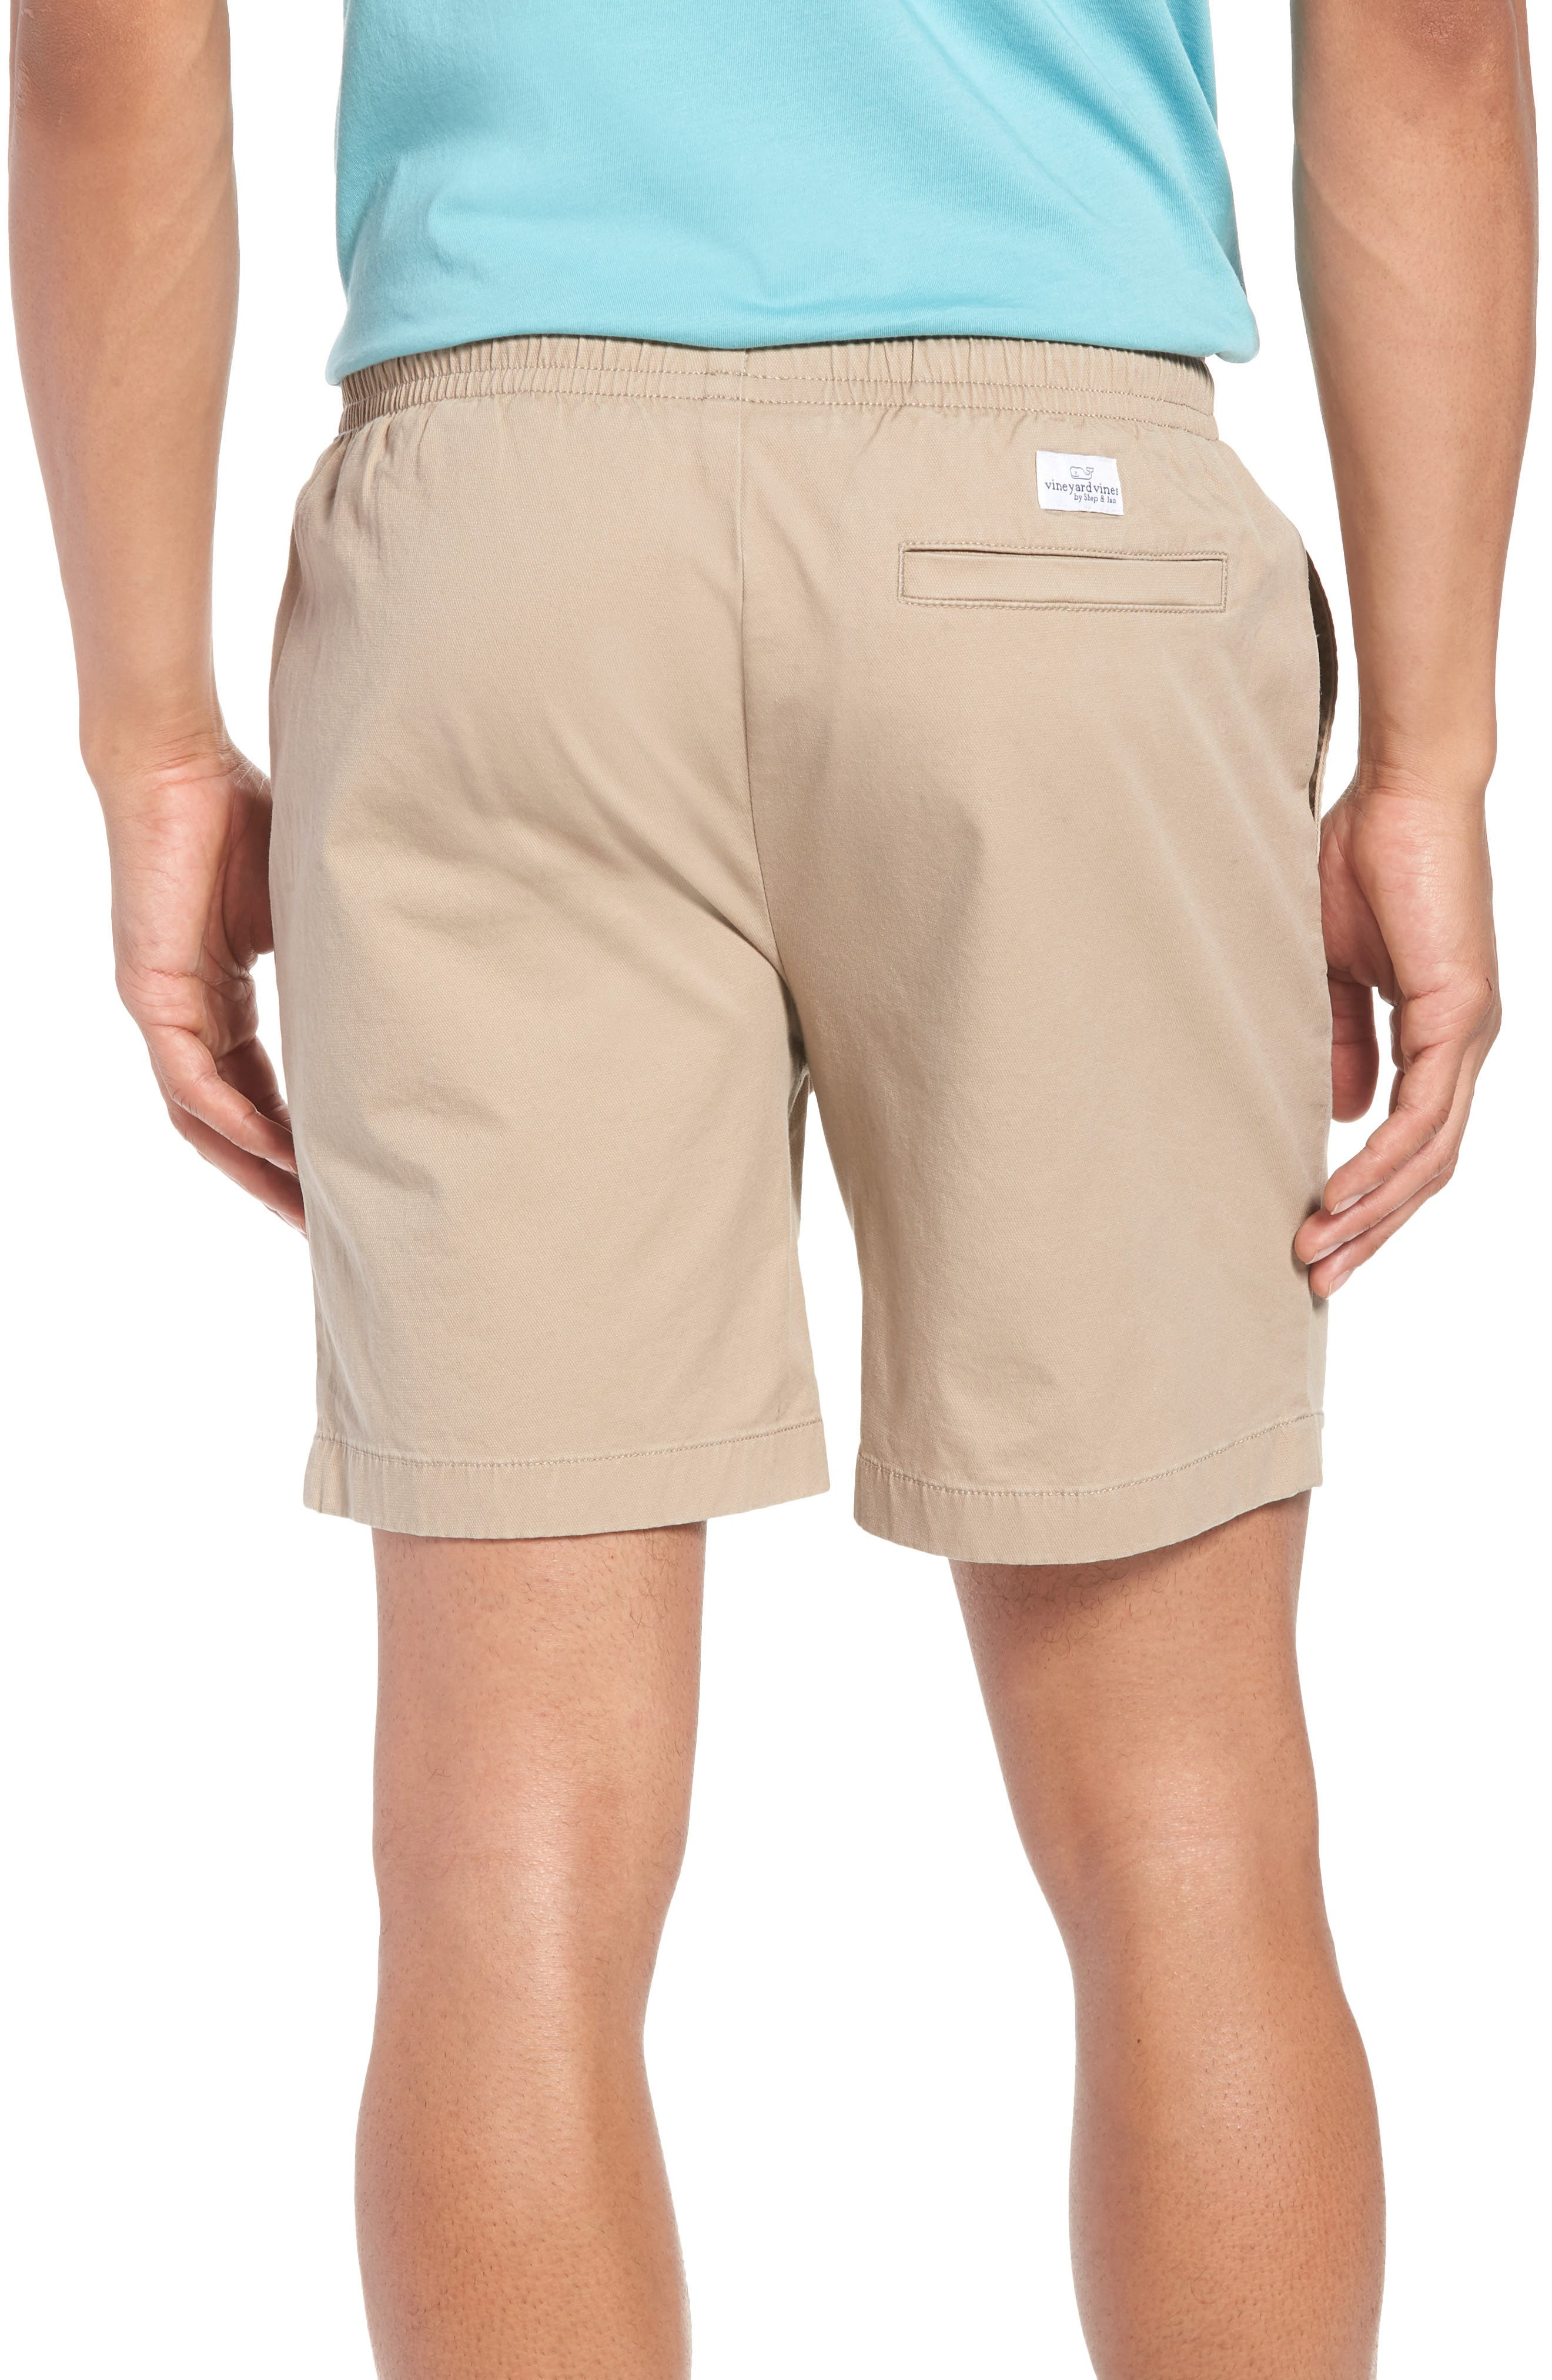 Jetty Stretch Cotton Shorts,                             Alternate thumbnail 2, color,                             250